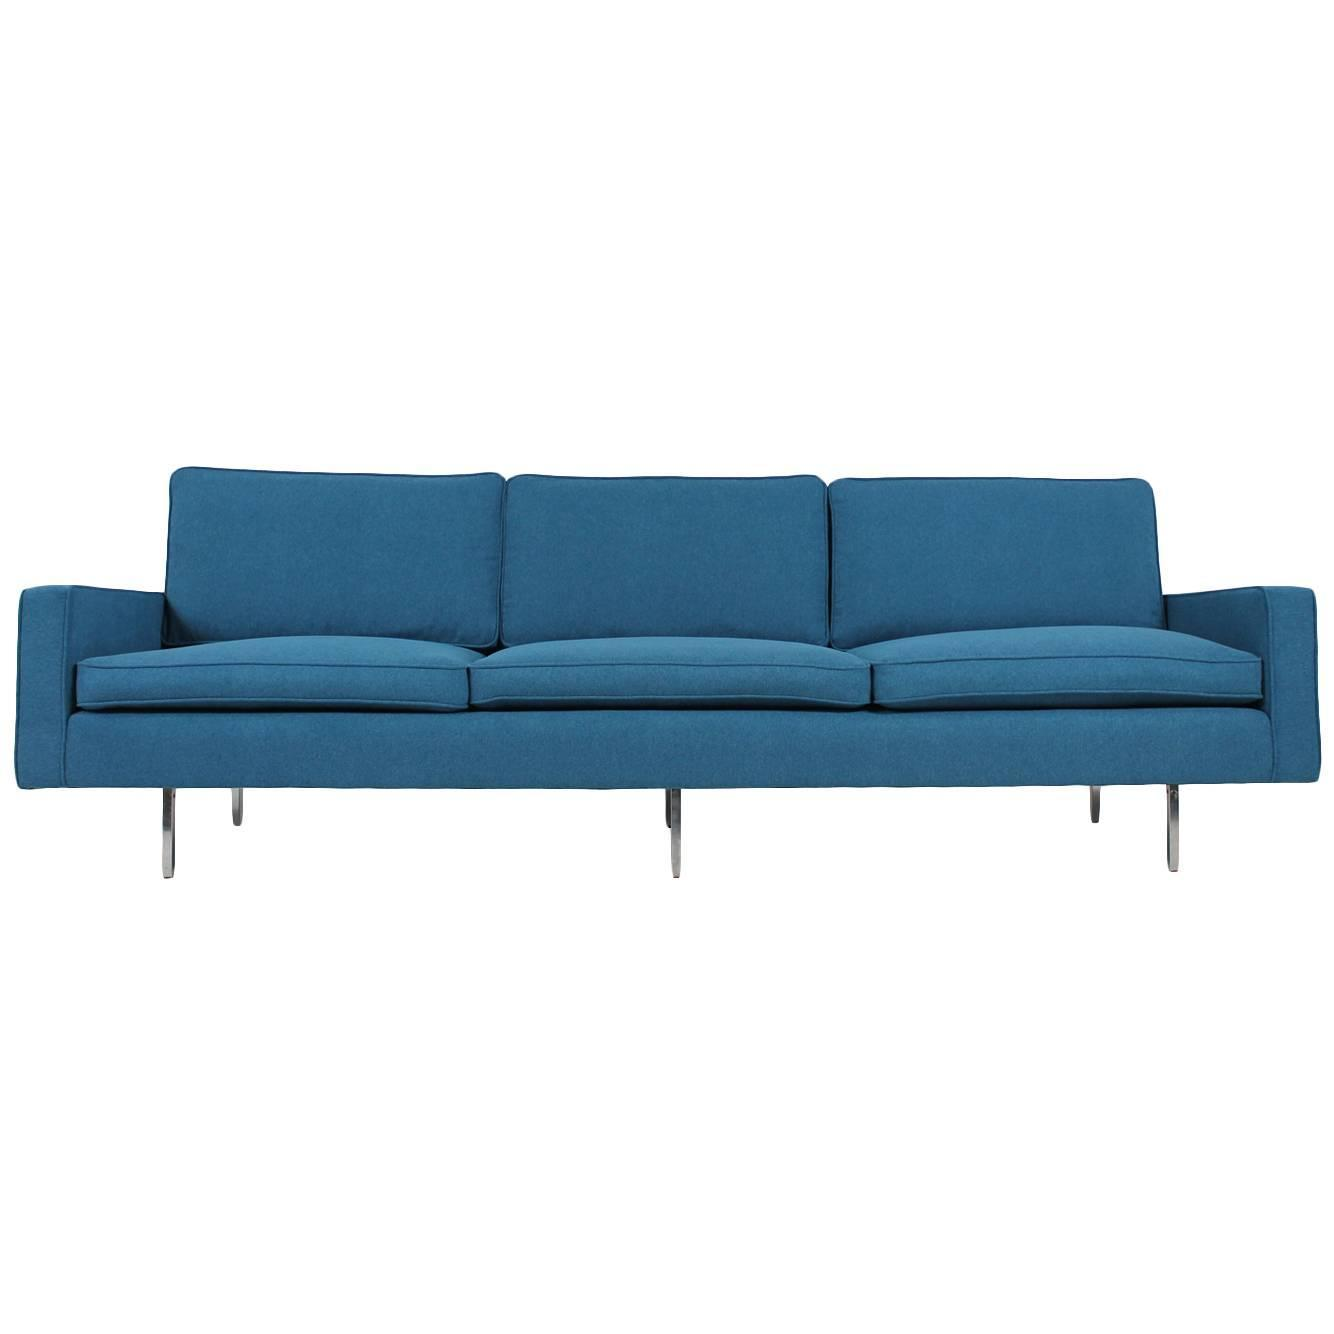 Beautiful Mid Century Florence Knoll Sofa Mod 25 Bc Knoll International 1949 For Sale At 1stdibs